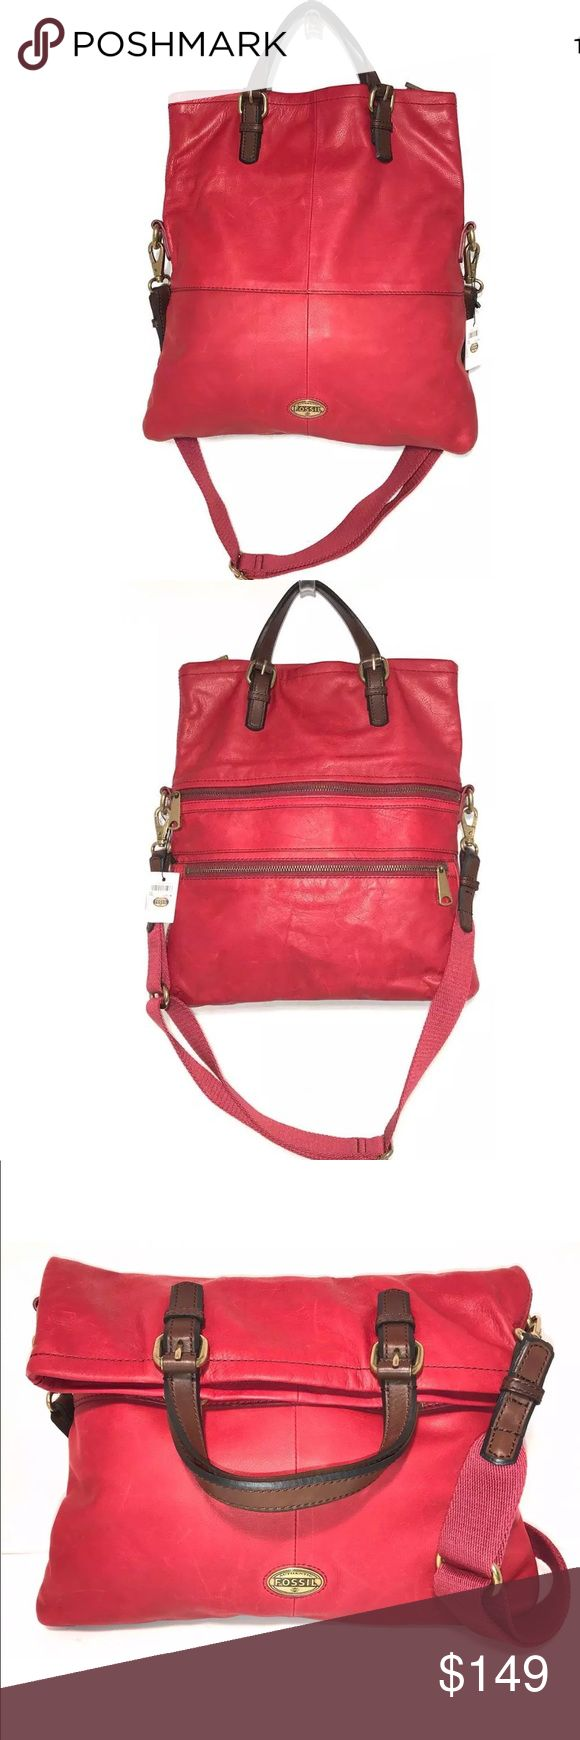 """🆕 Fossil Leather Fold Over Large Crossbody Bag Red Leather Explorer Fold Over Detachable Strap.                                                                  📌Description Color: Red Material: Genuine leather Closure: Zipper Pockets: Two large zip- pocket  front Handles /Strap: Double strap and one detachable strap  📌Interior Pockets: One zip-pocket and two open pockets Lining: Brown 📌Measurements Height: 15"""" Length: 13"""" Depth: 2"""" Strap Drop: 4"""" 22"""" with the bag folded Fossil Bags…"""